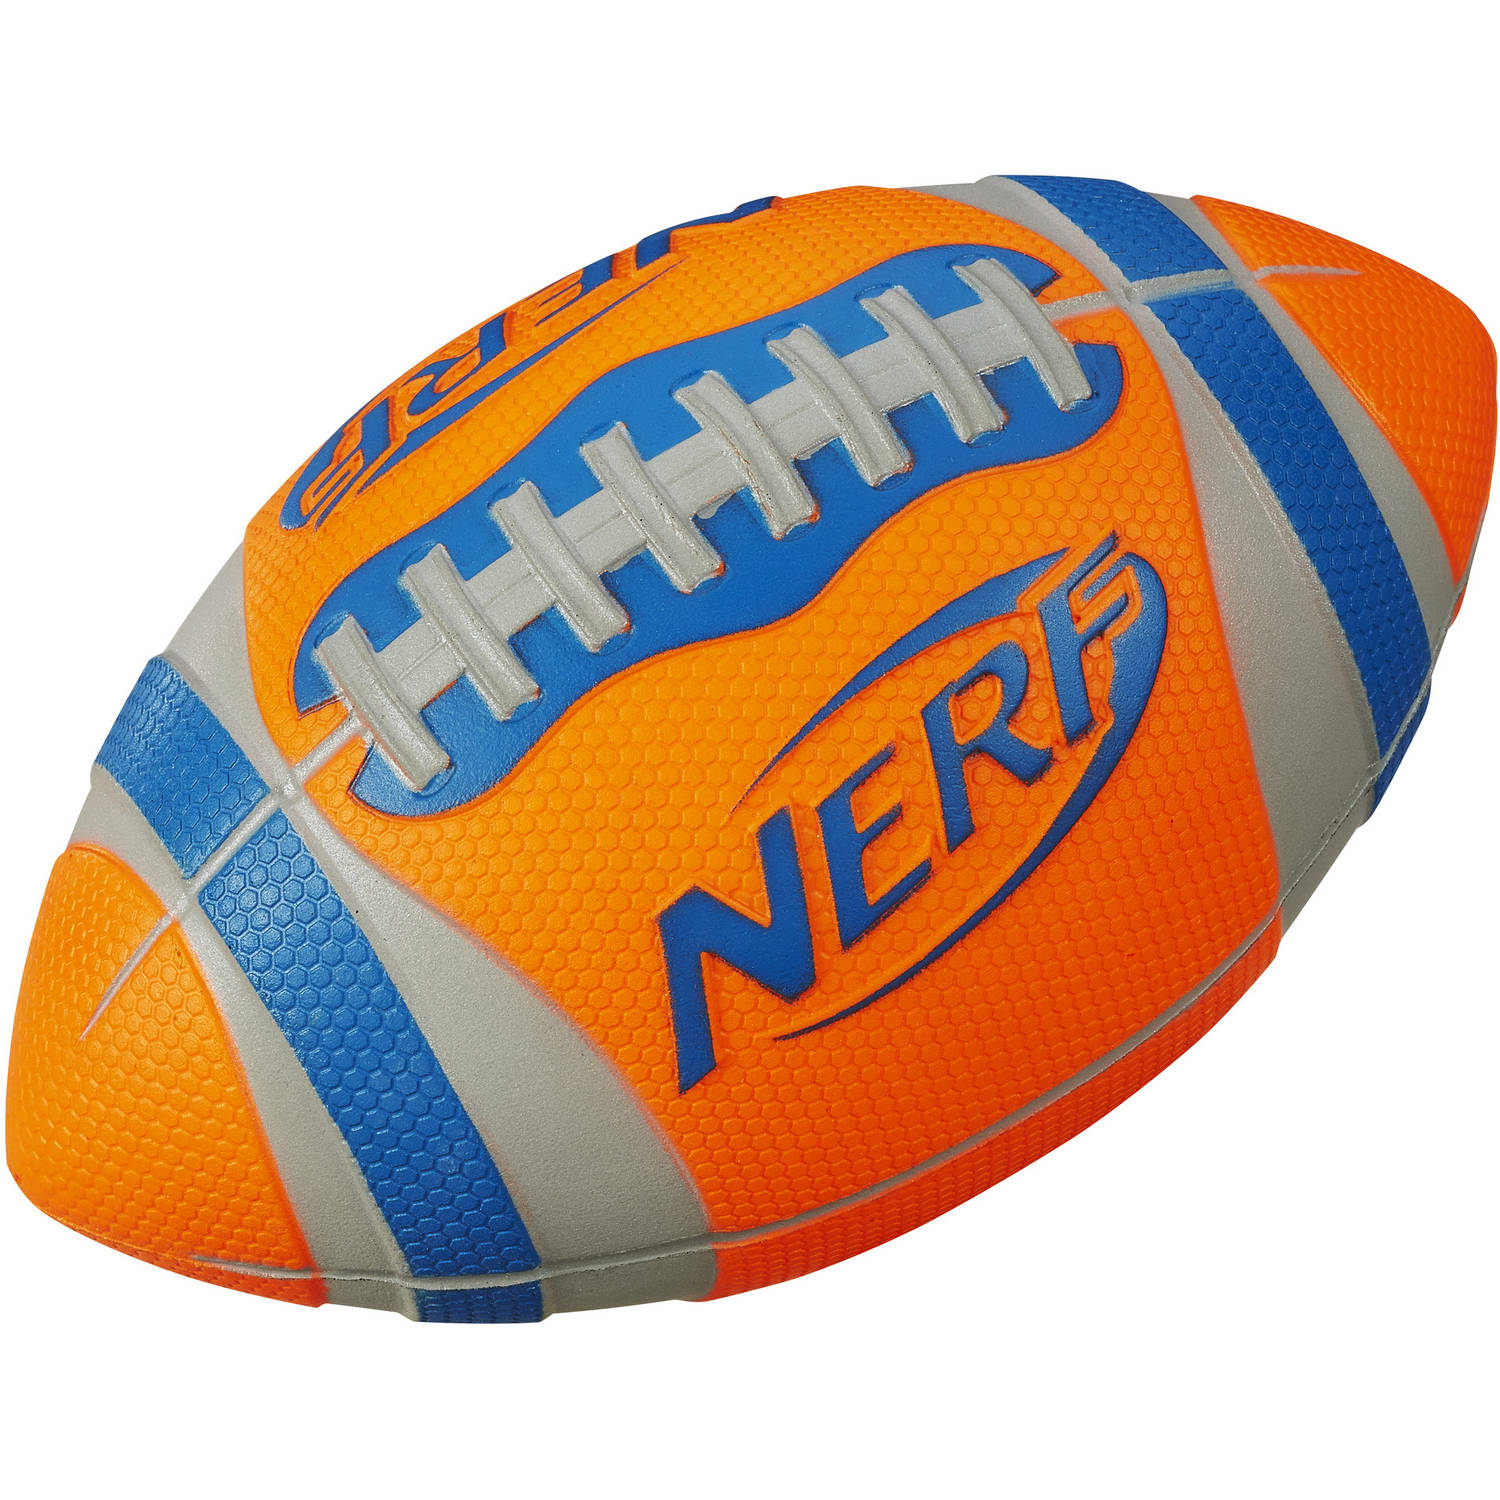 Nerf Sports Pro Grip Football (Orange)